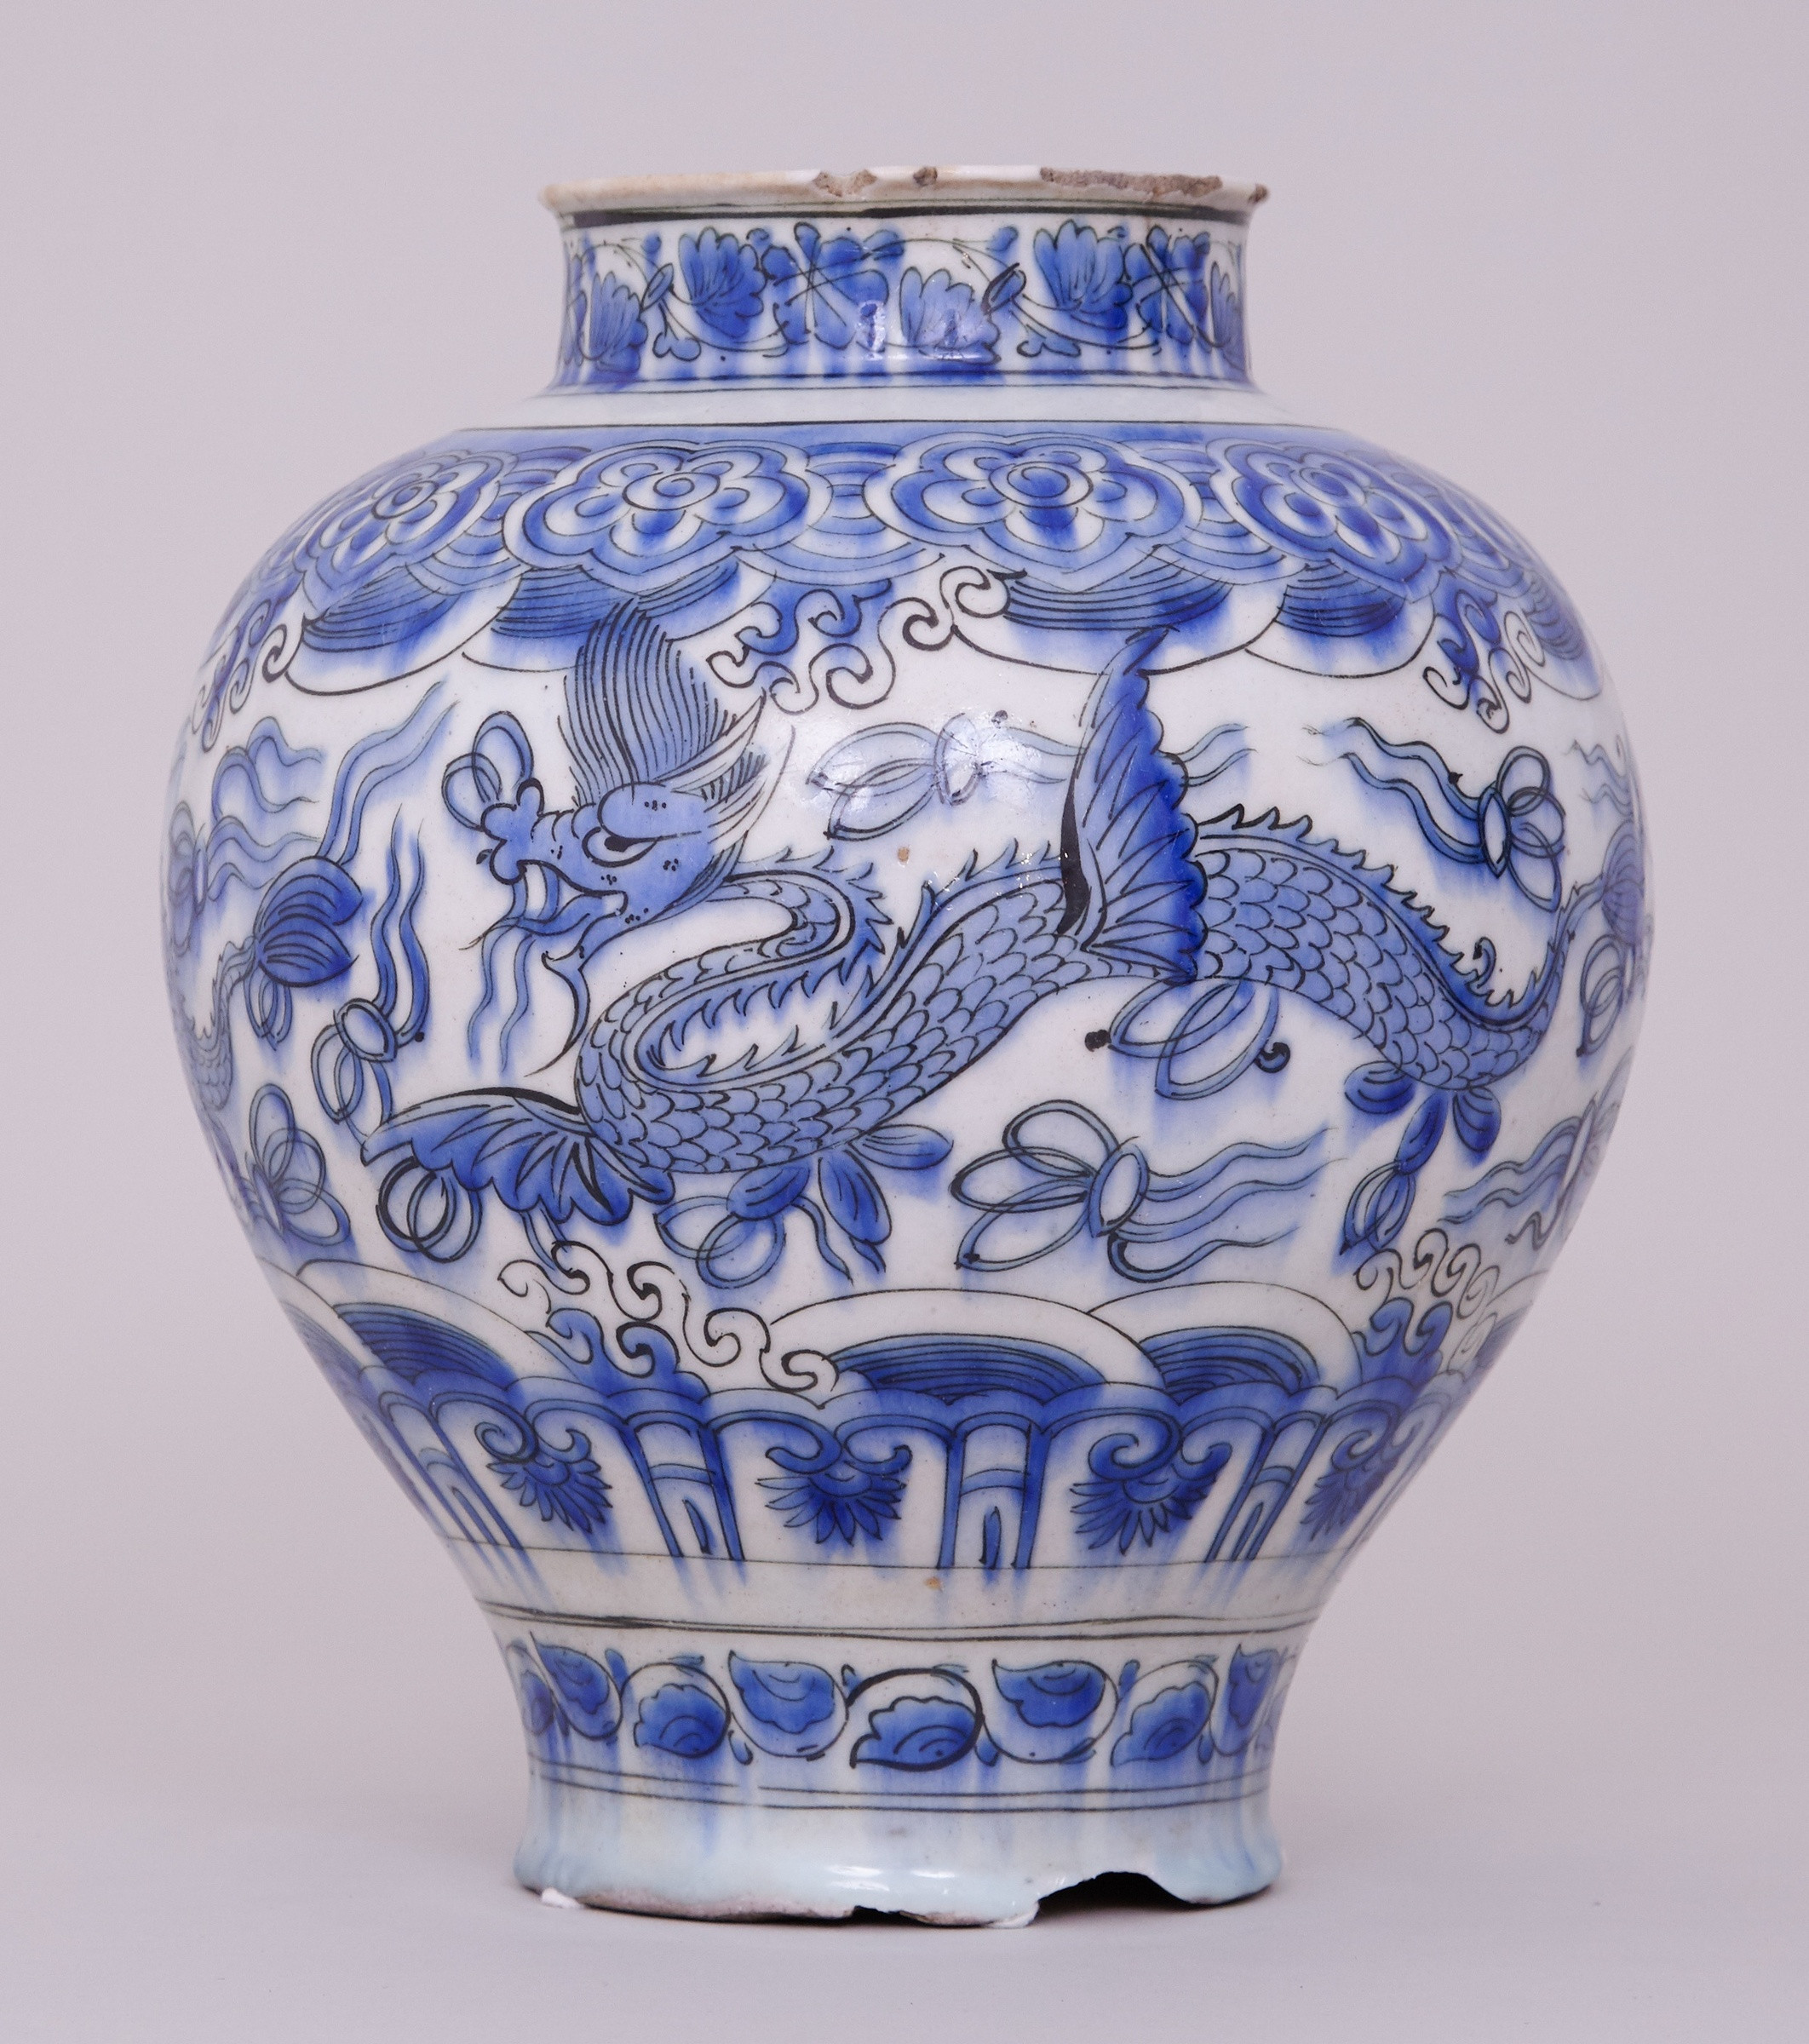 17th Century Chinese Vase Of A Blue and White Persian Safavid Jar 17th Century Anita Gray within A Blue and White Persian Safavid Jar